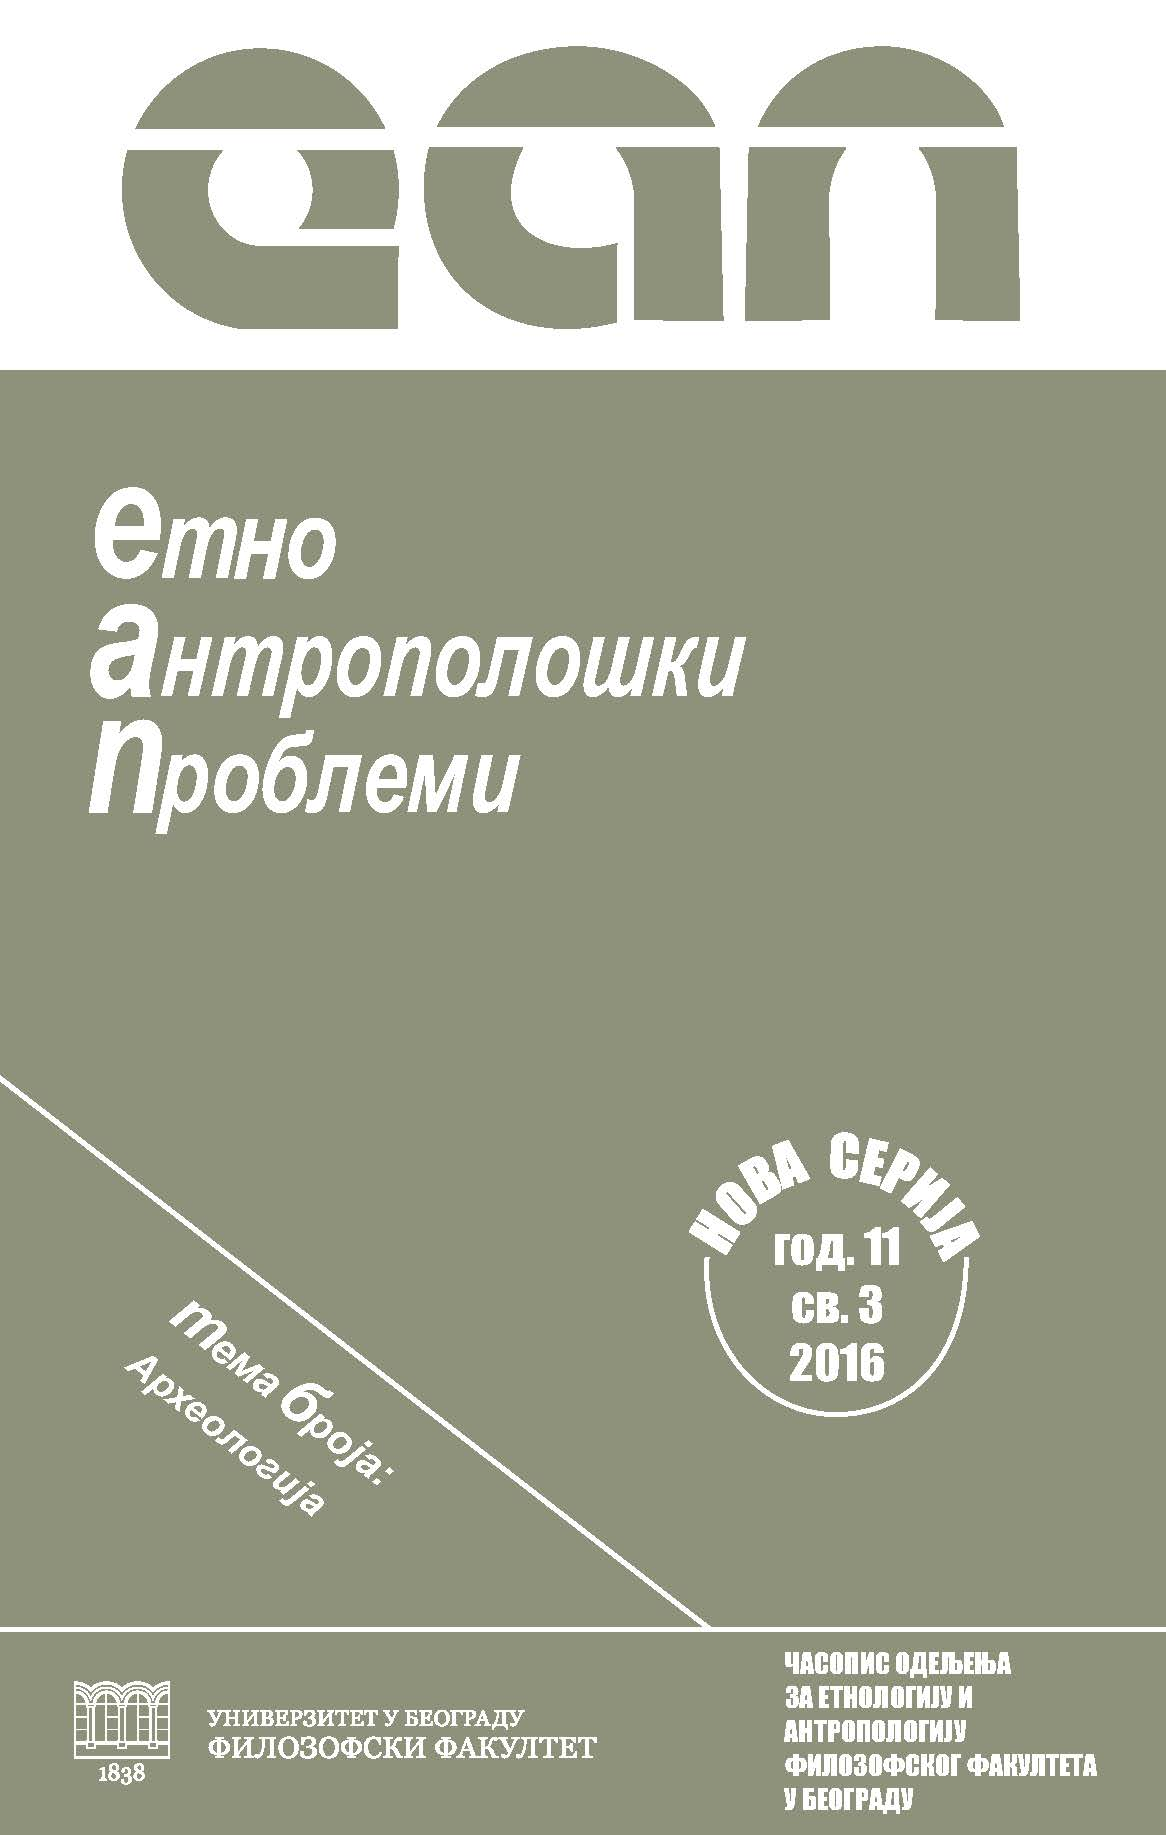 Permanent museum collections from alternative classrooms to tourist attractions: Comparative analysis of visits to National Museum of Valjevo's collections in periods from 1951 to 1961 and from 2001 to 2011 Cover Image